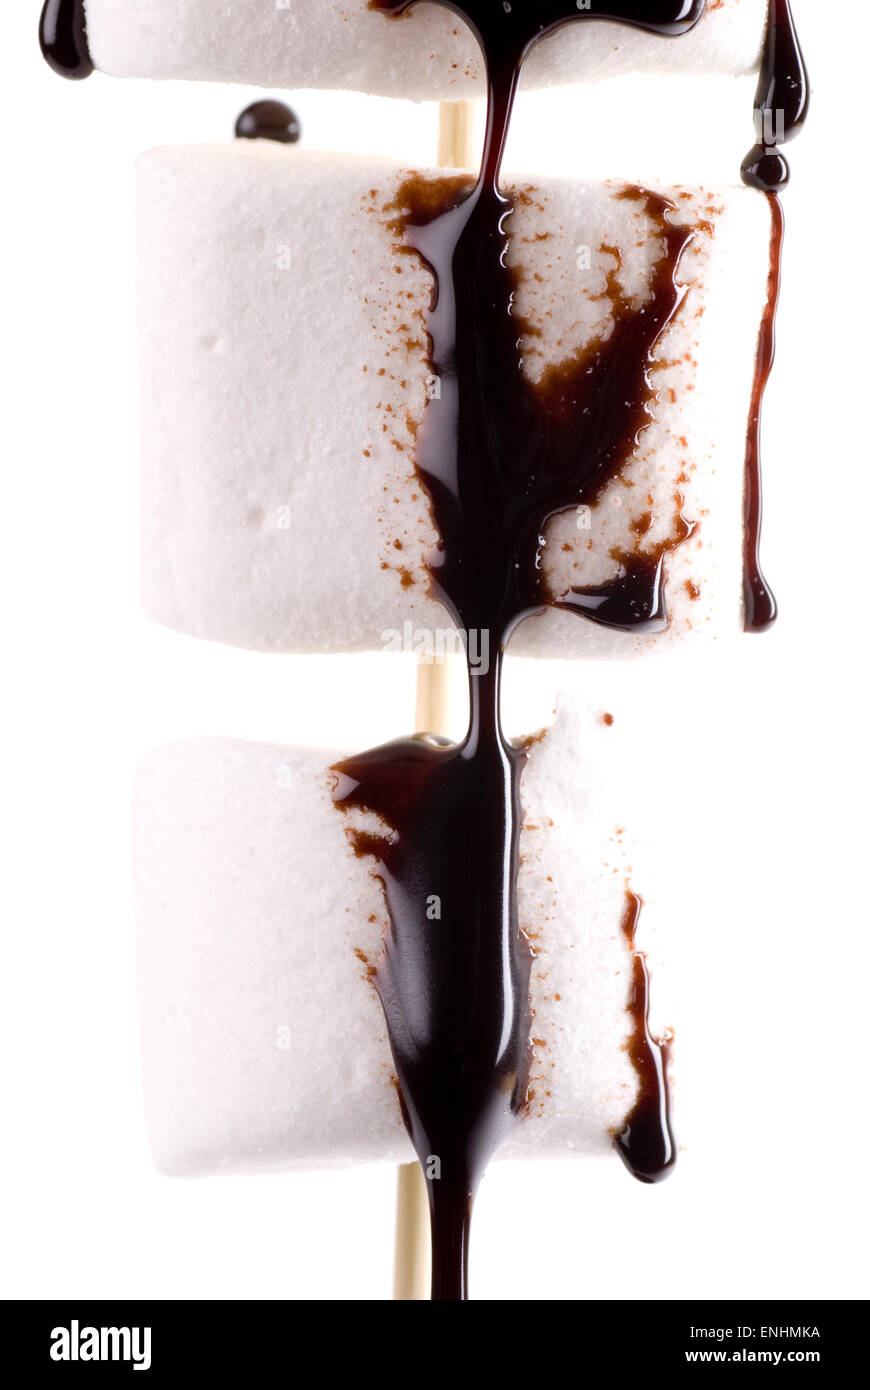 Marshmallows with chocolate sauce on a wooden stick. - Stock Image